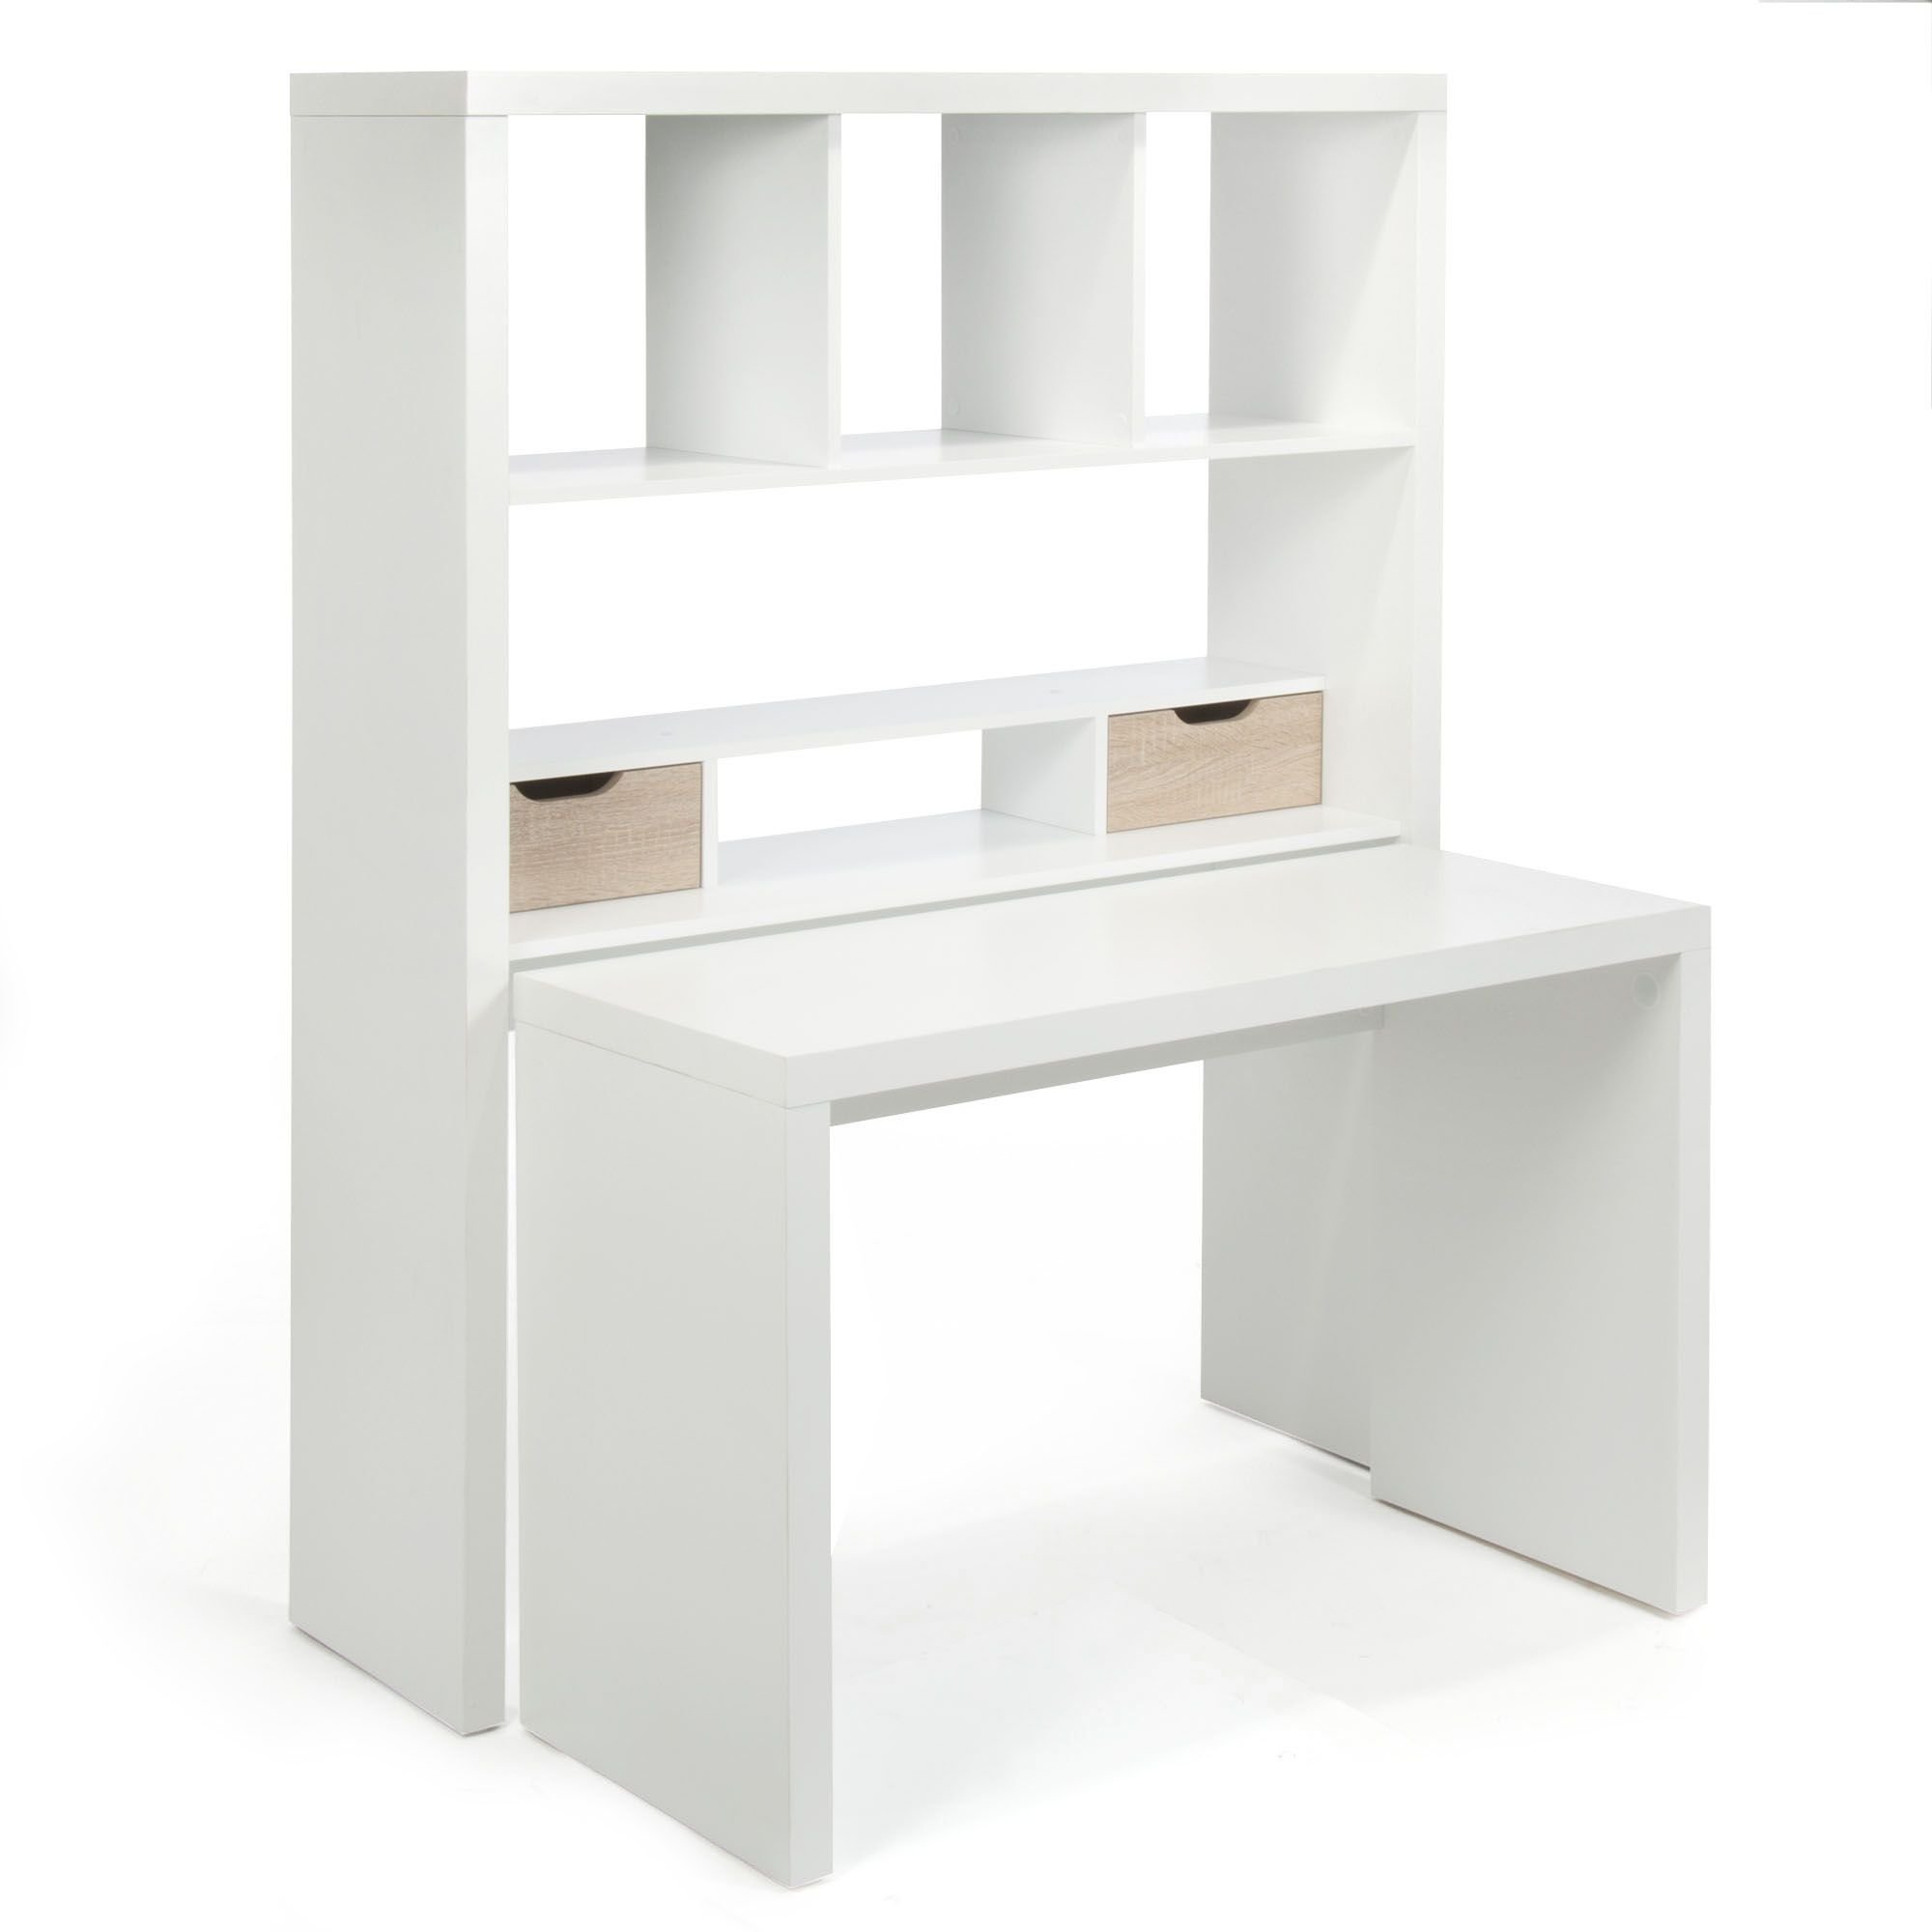 twisty bureau bureau modulable blanc avec tag res et tiroirs bureau modulable alin a et. Black Bedroom Furniture Sets. Home Design Ideas